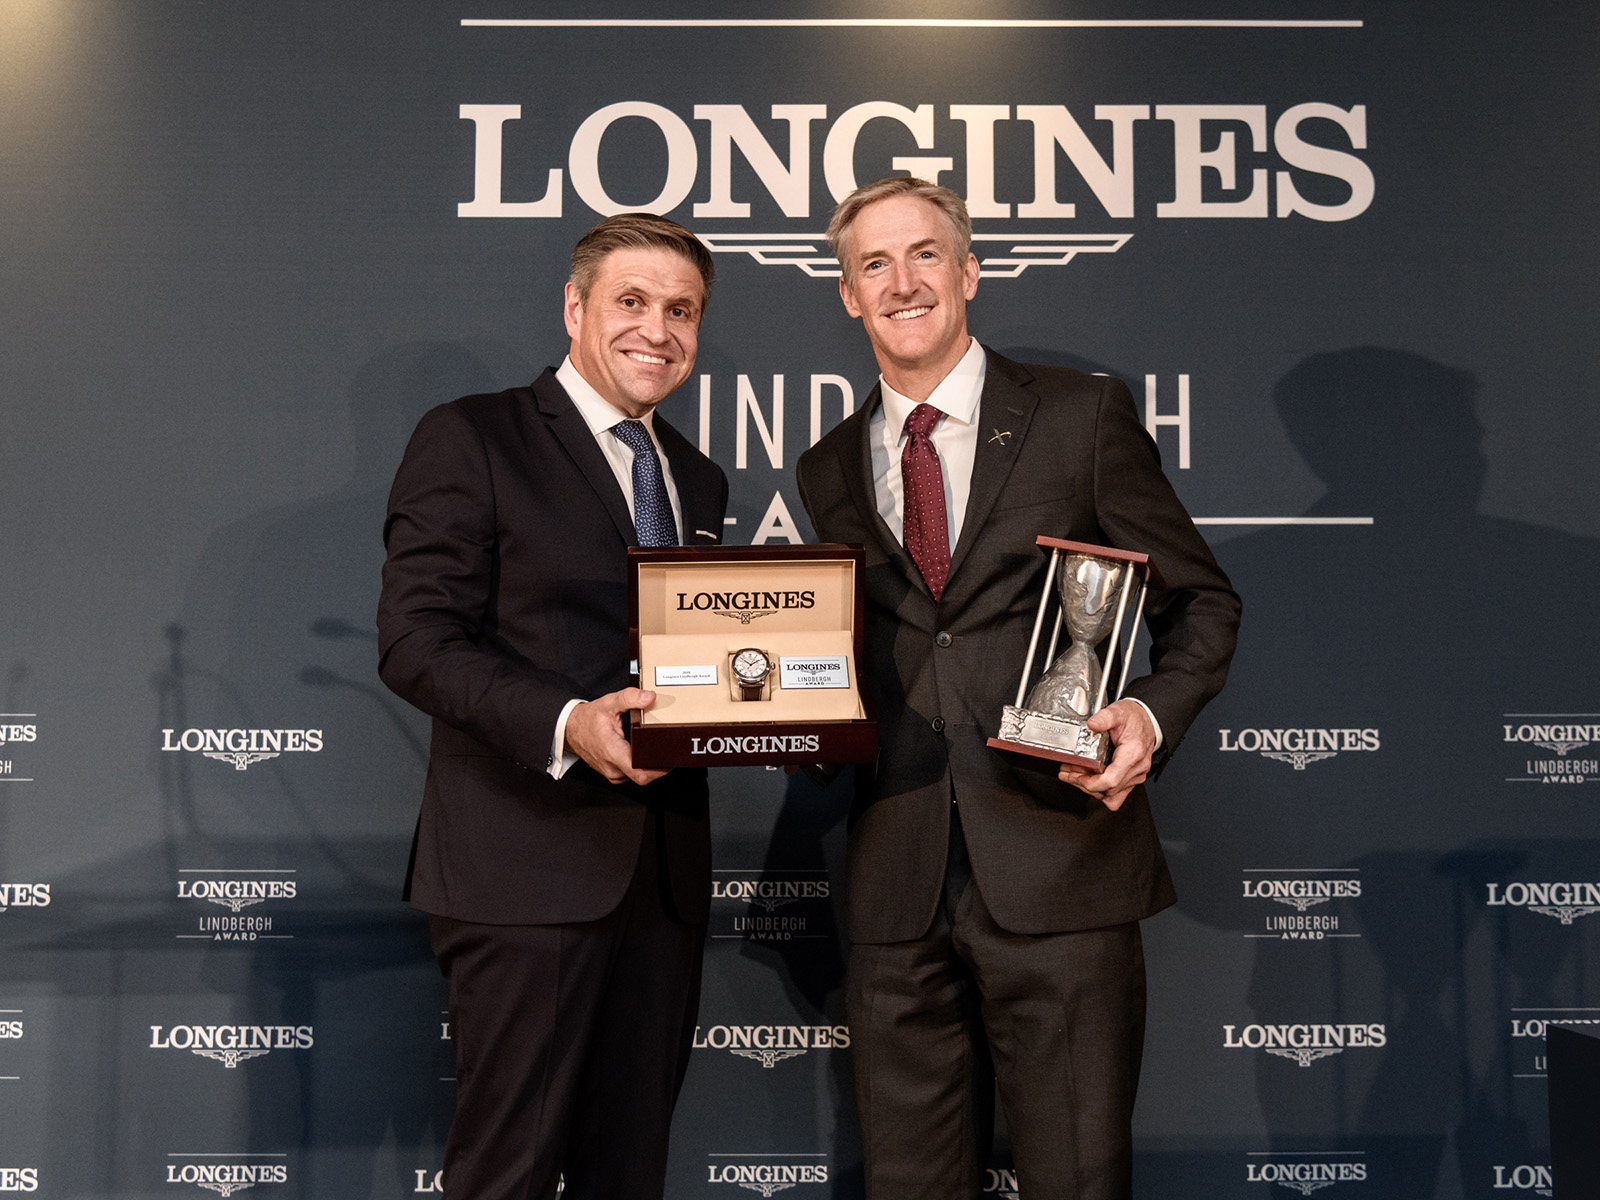 First Longines Lindbergh Award